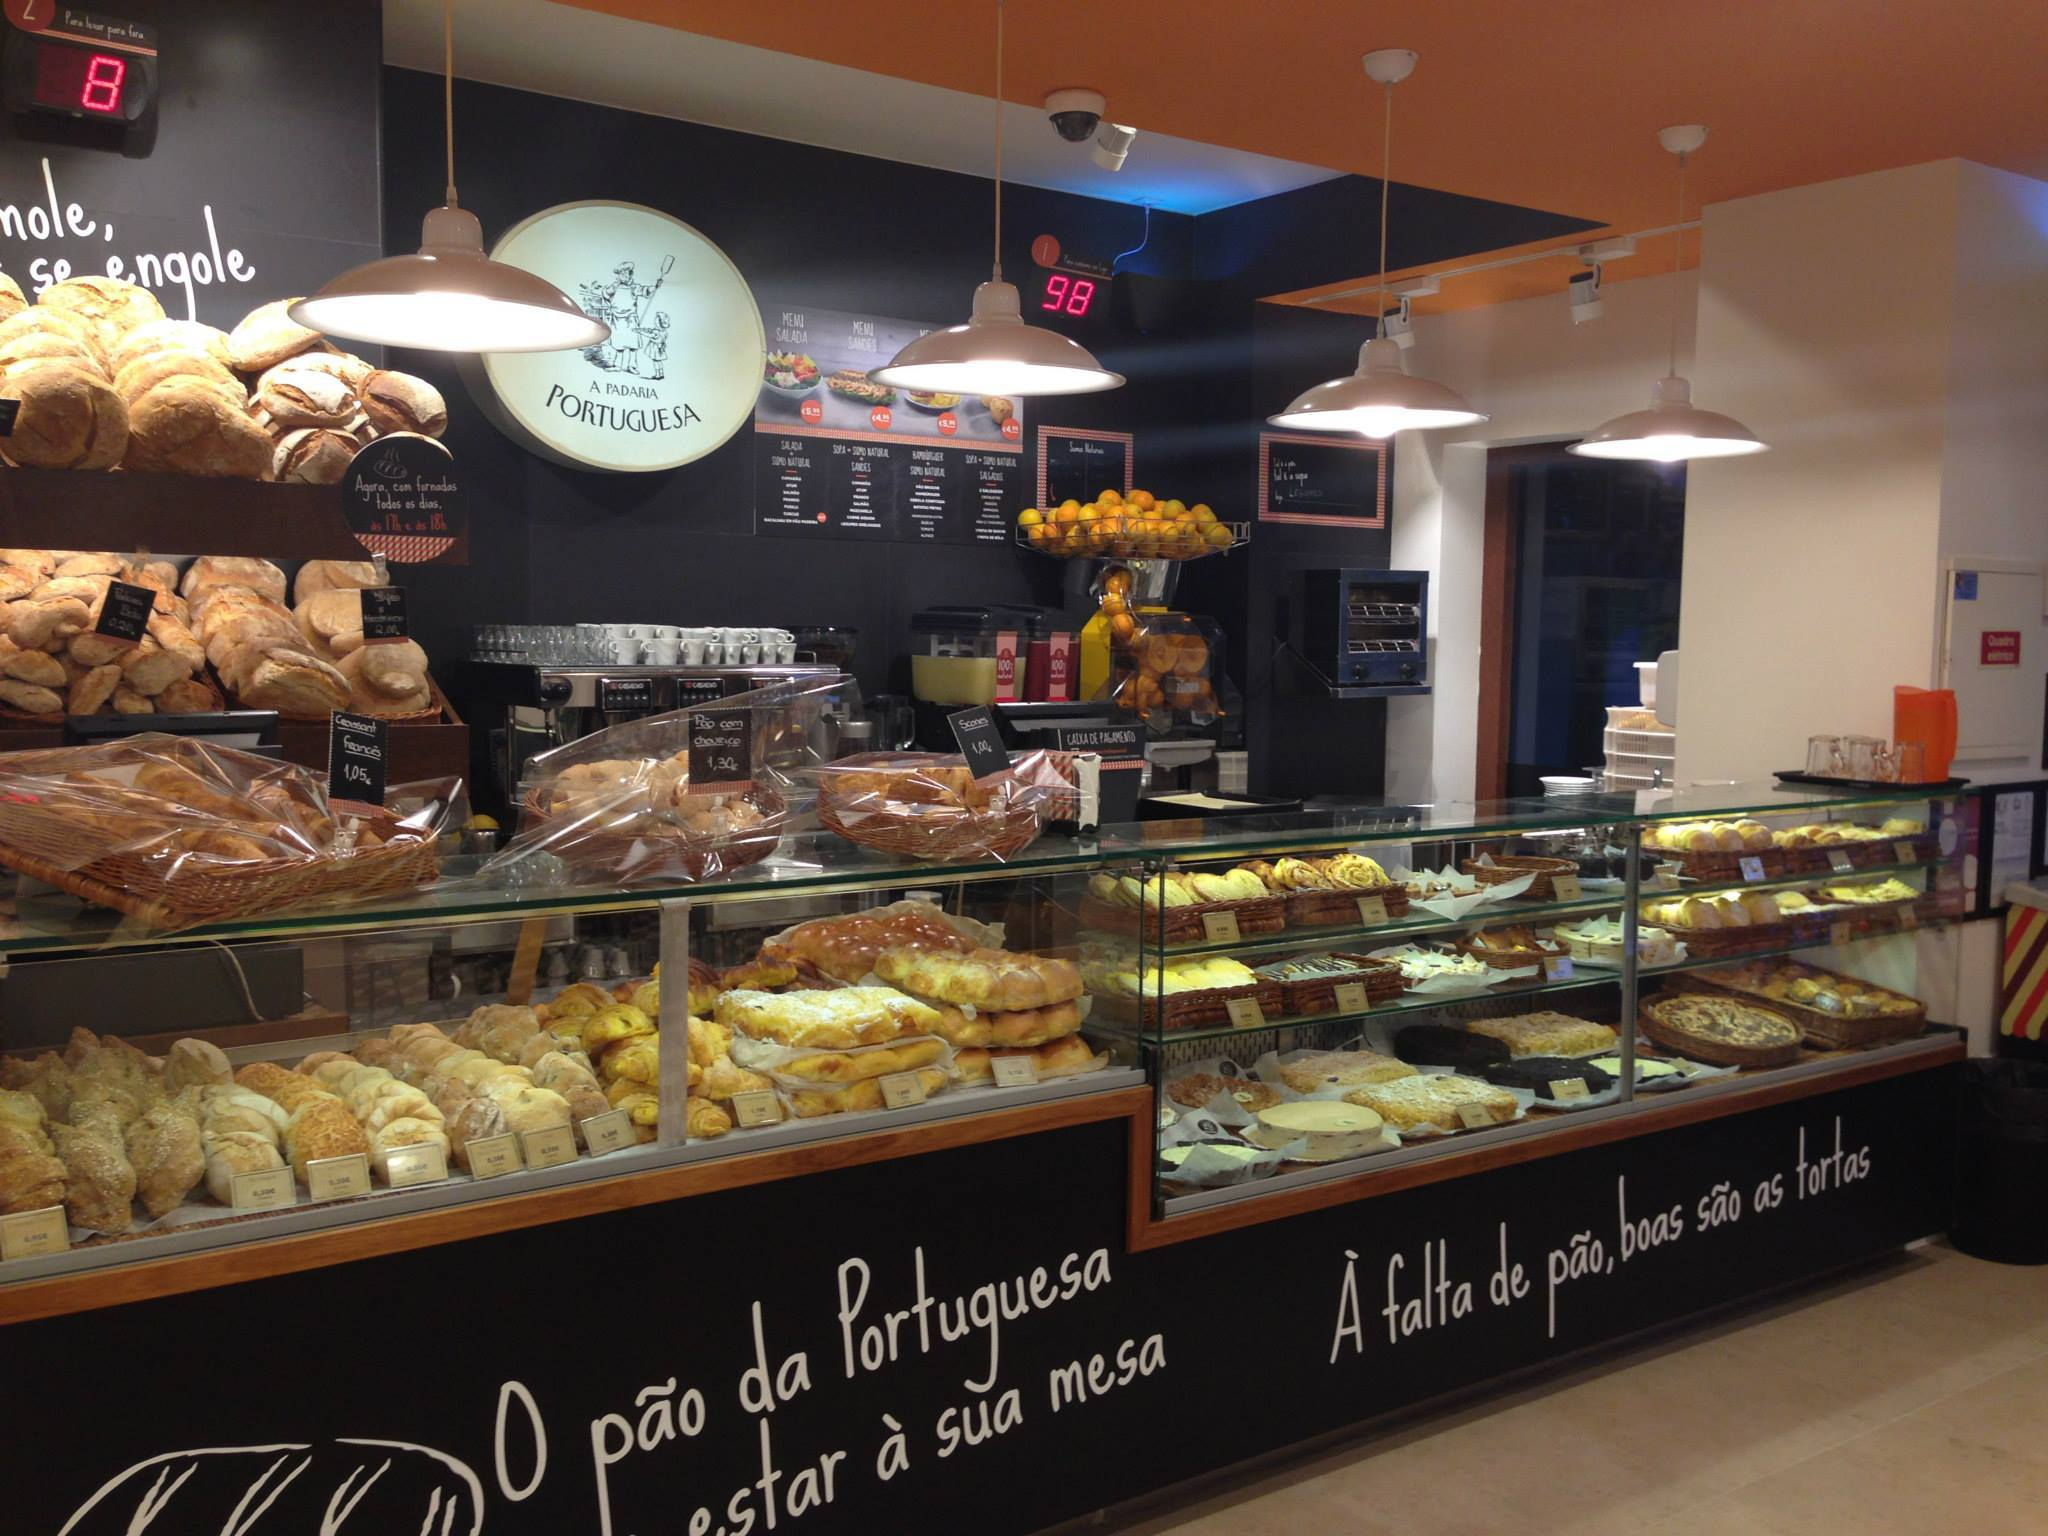 A Padaria Portuguesa - Bakery and Pastry store chain - Lisbon